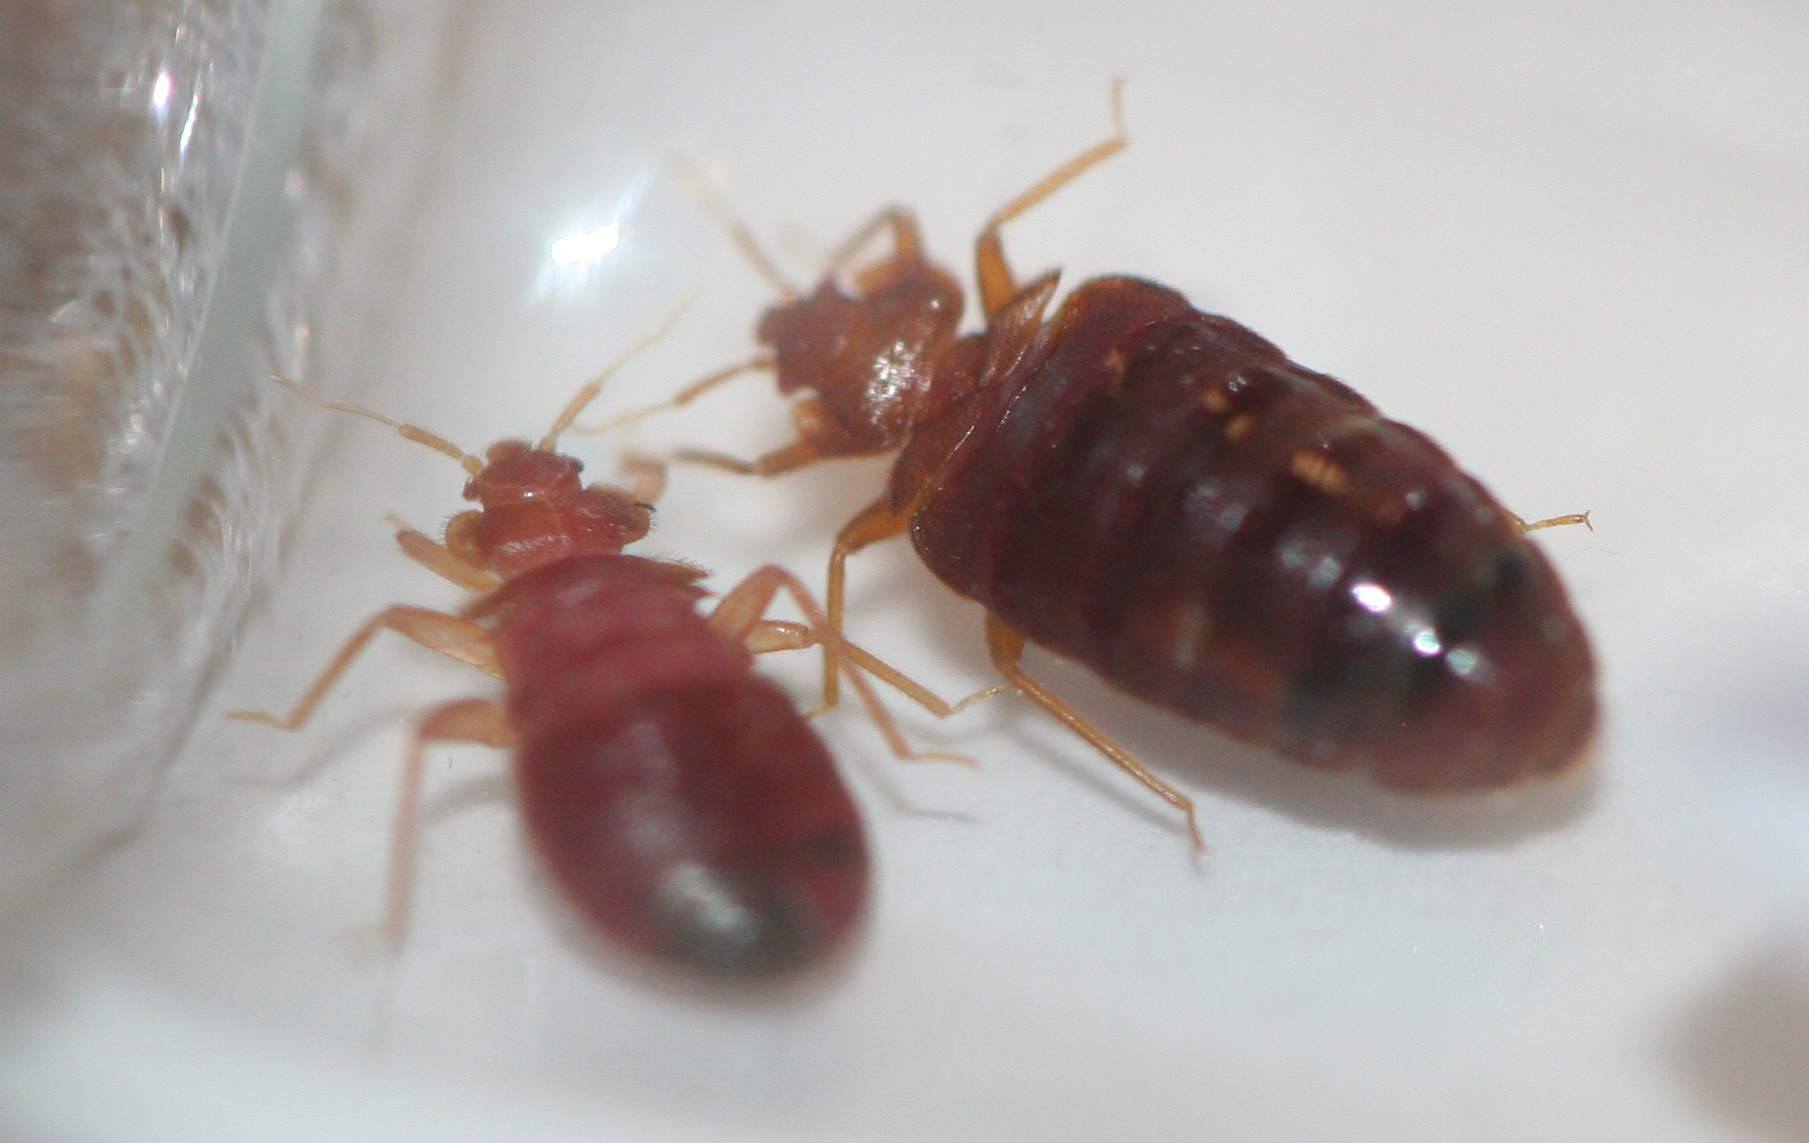 How Can I Get Rid of Bed Bugs in My Apartment